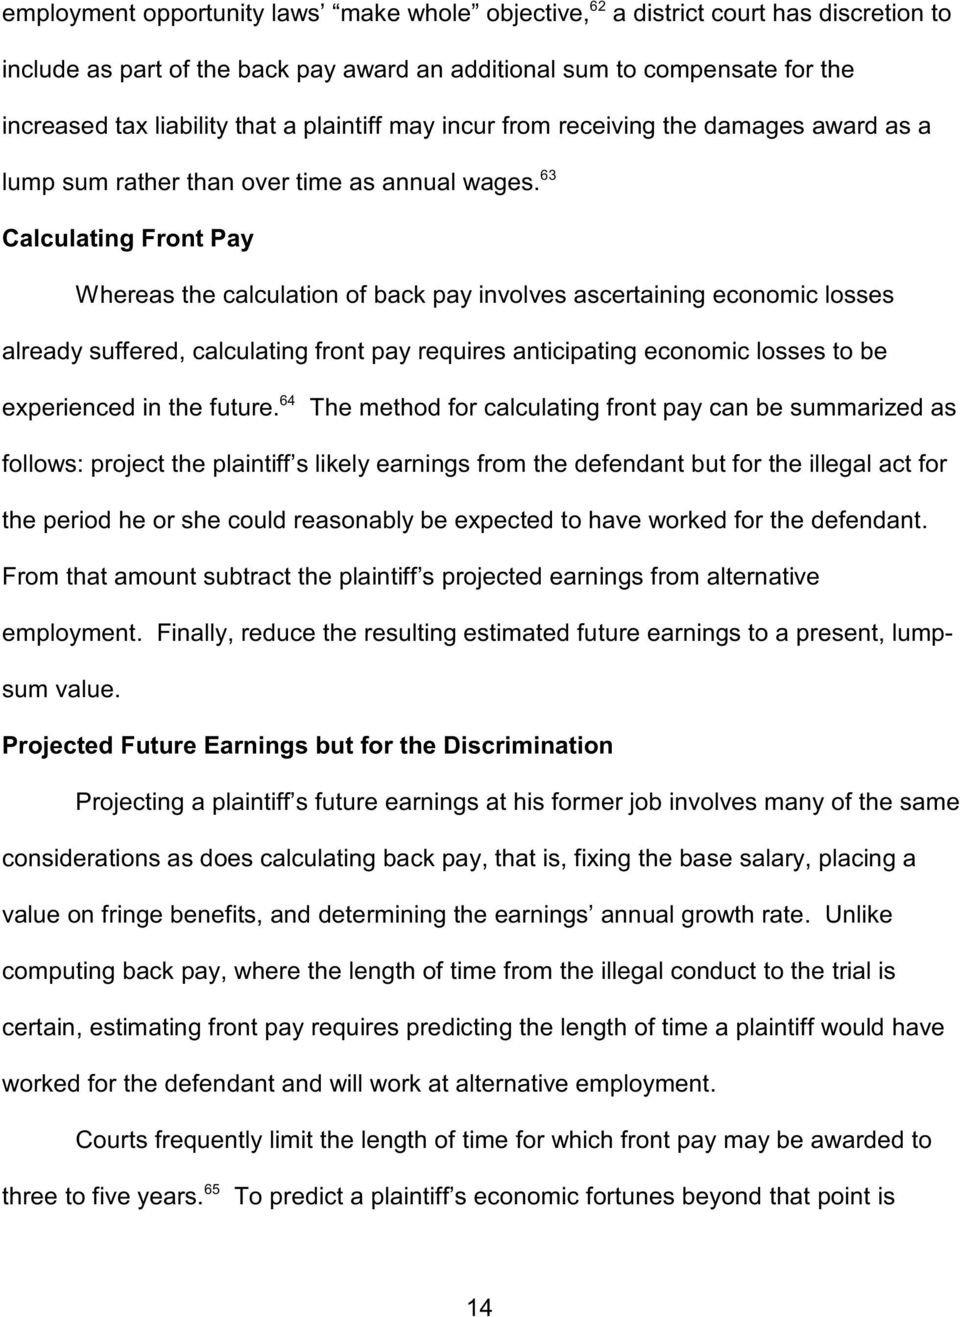 Calculating Front Pay Whereas e calculation of back pay involves ascertaining economic losses already suffered, calculating front pay requires anticipating economic losses to be 64 experienced in e